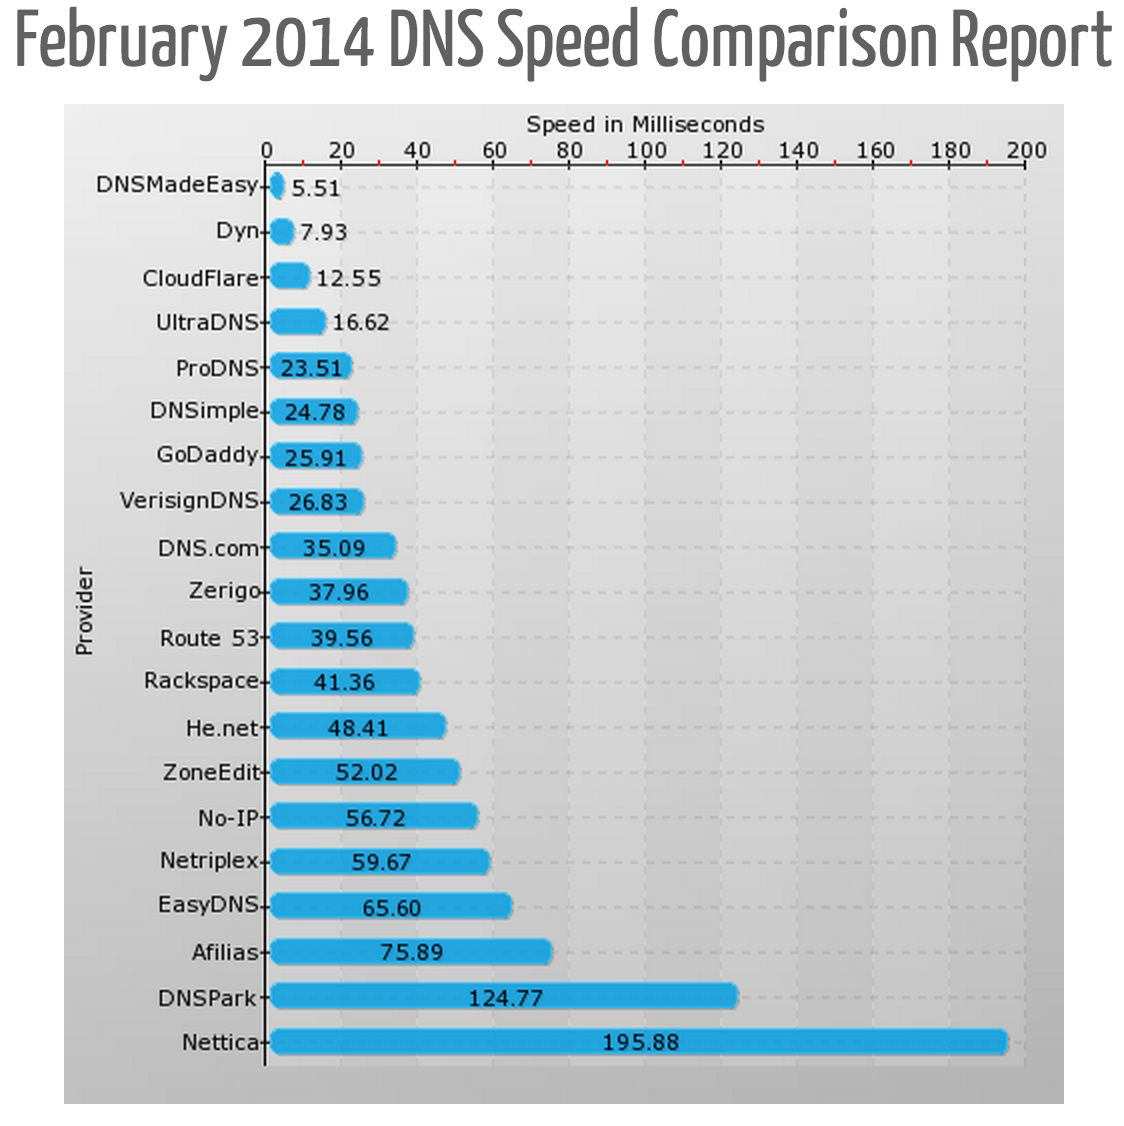 Fastest DNS Providers For February 2014